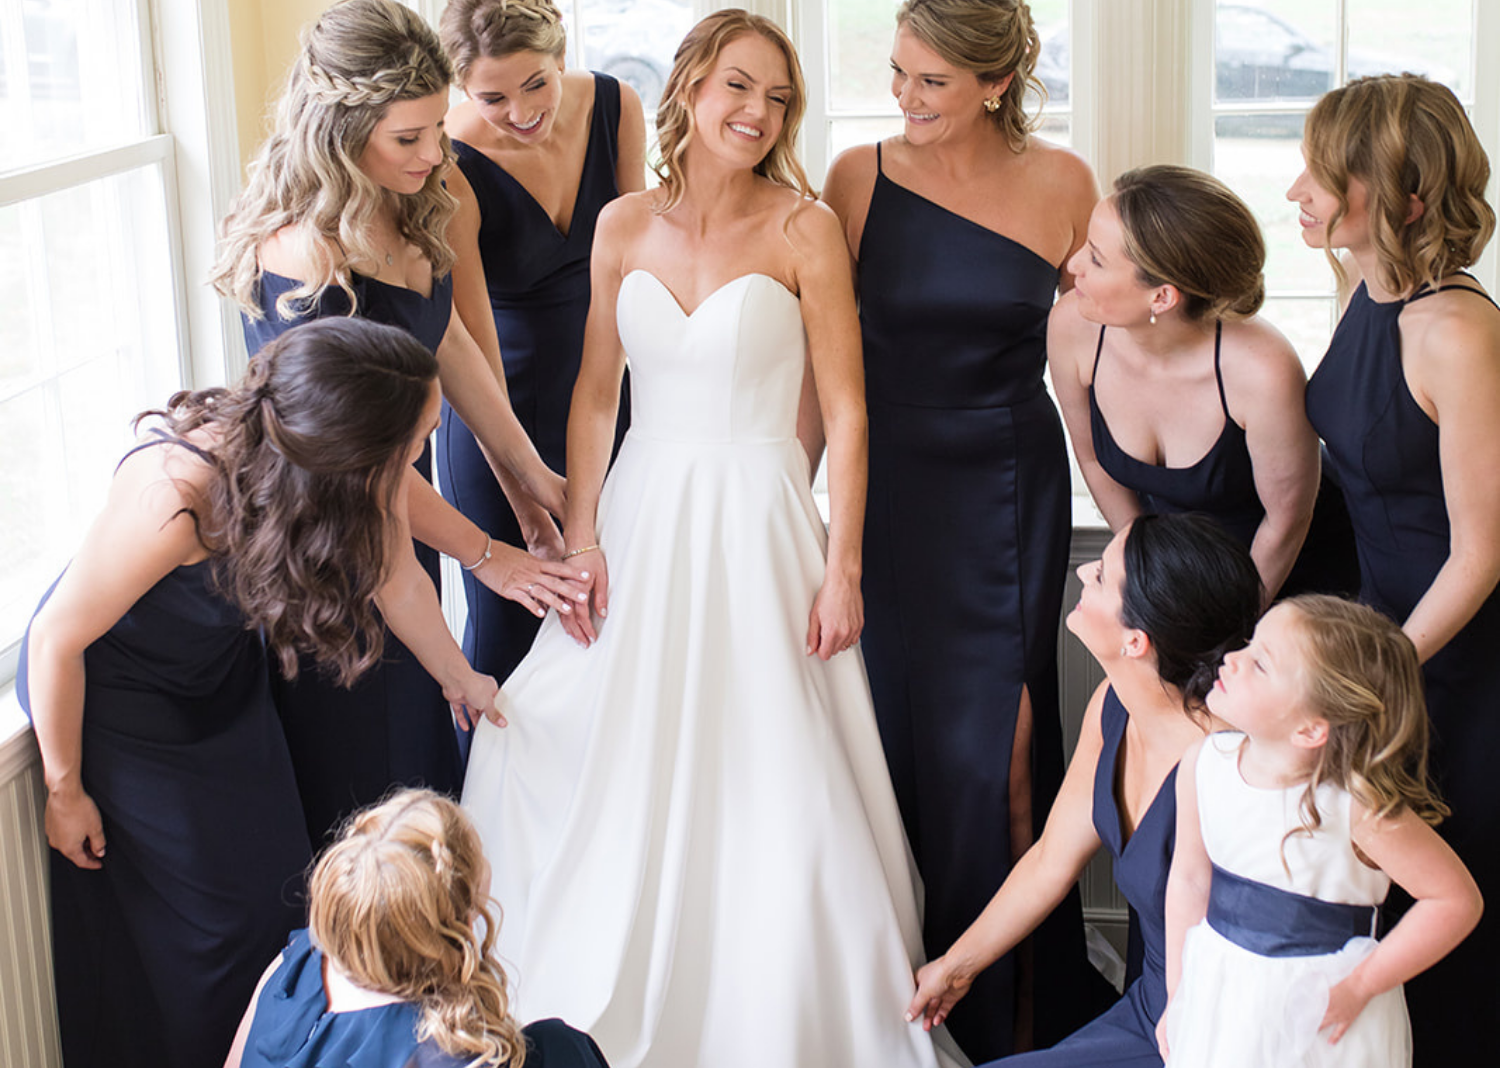 bridesmaids looking at the bride in her wedding dress